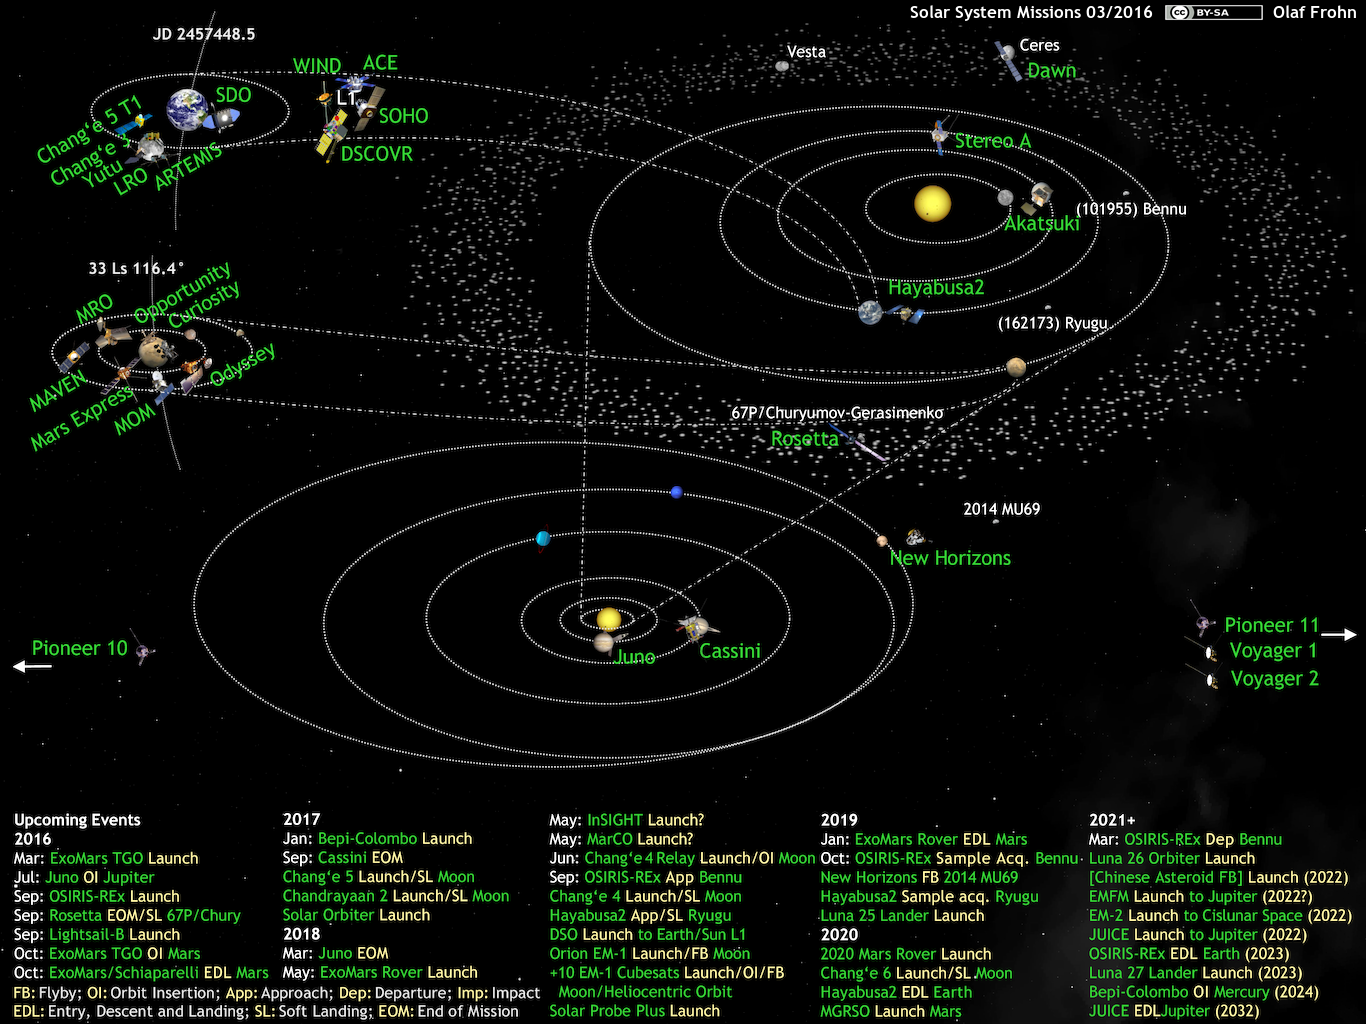 http://planetary.s3.amazonaws.com/assets/images/charts-diagrams/2016/20160226_solar-system-missions2016-03.png